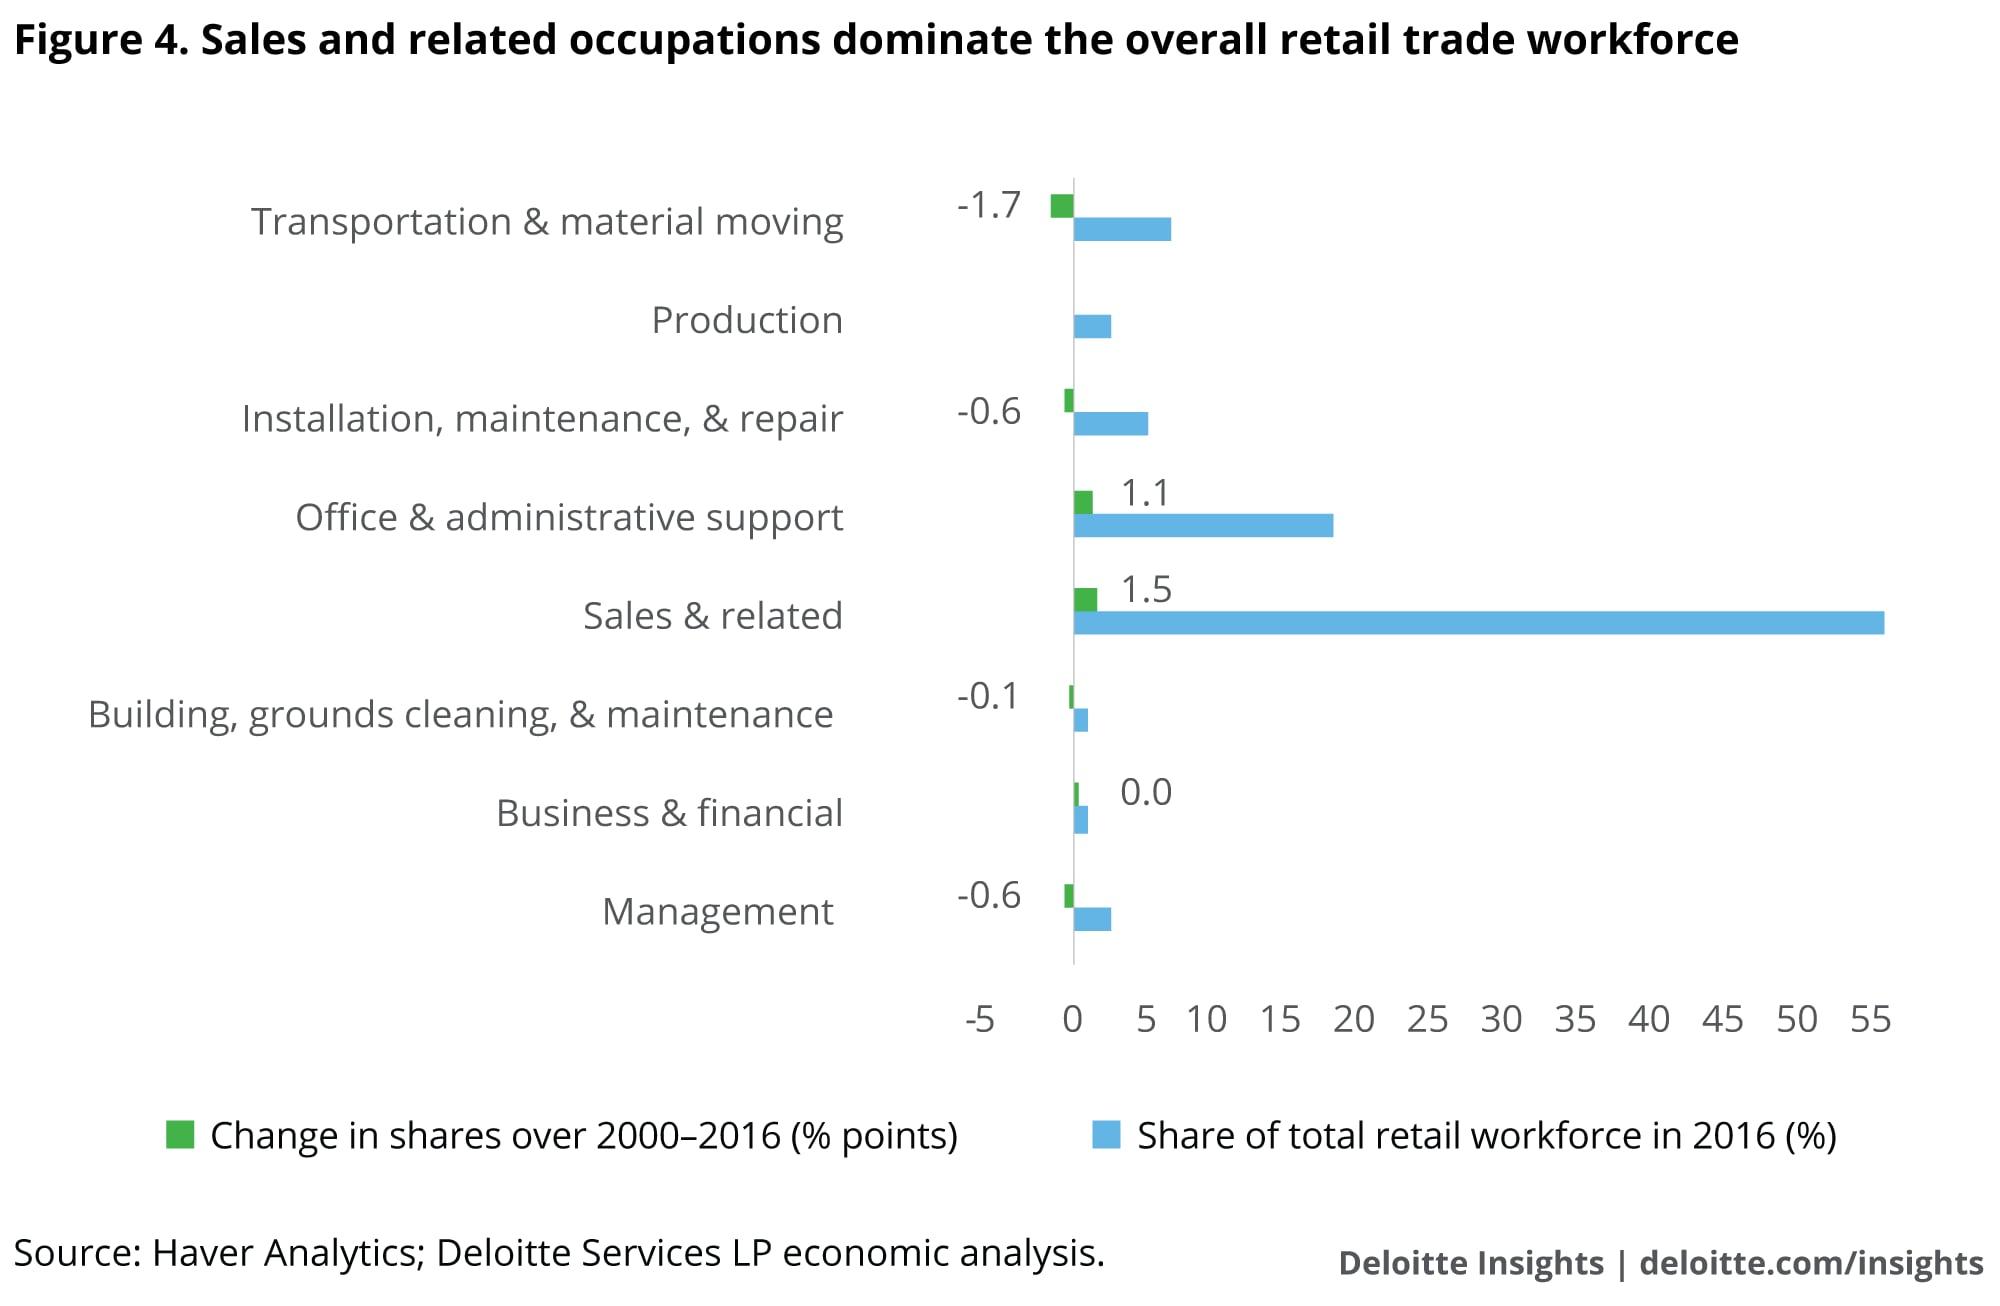 Sales and related occupations dominate the overall retail trade workforce